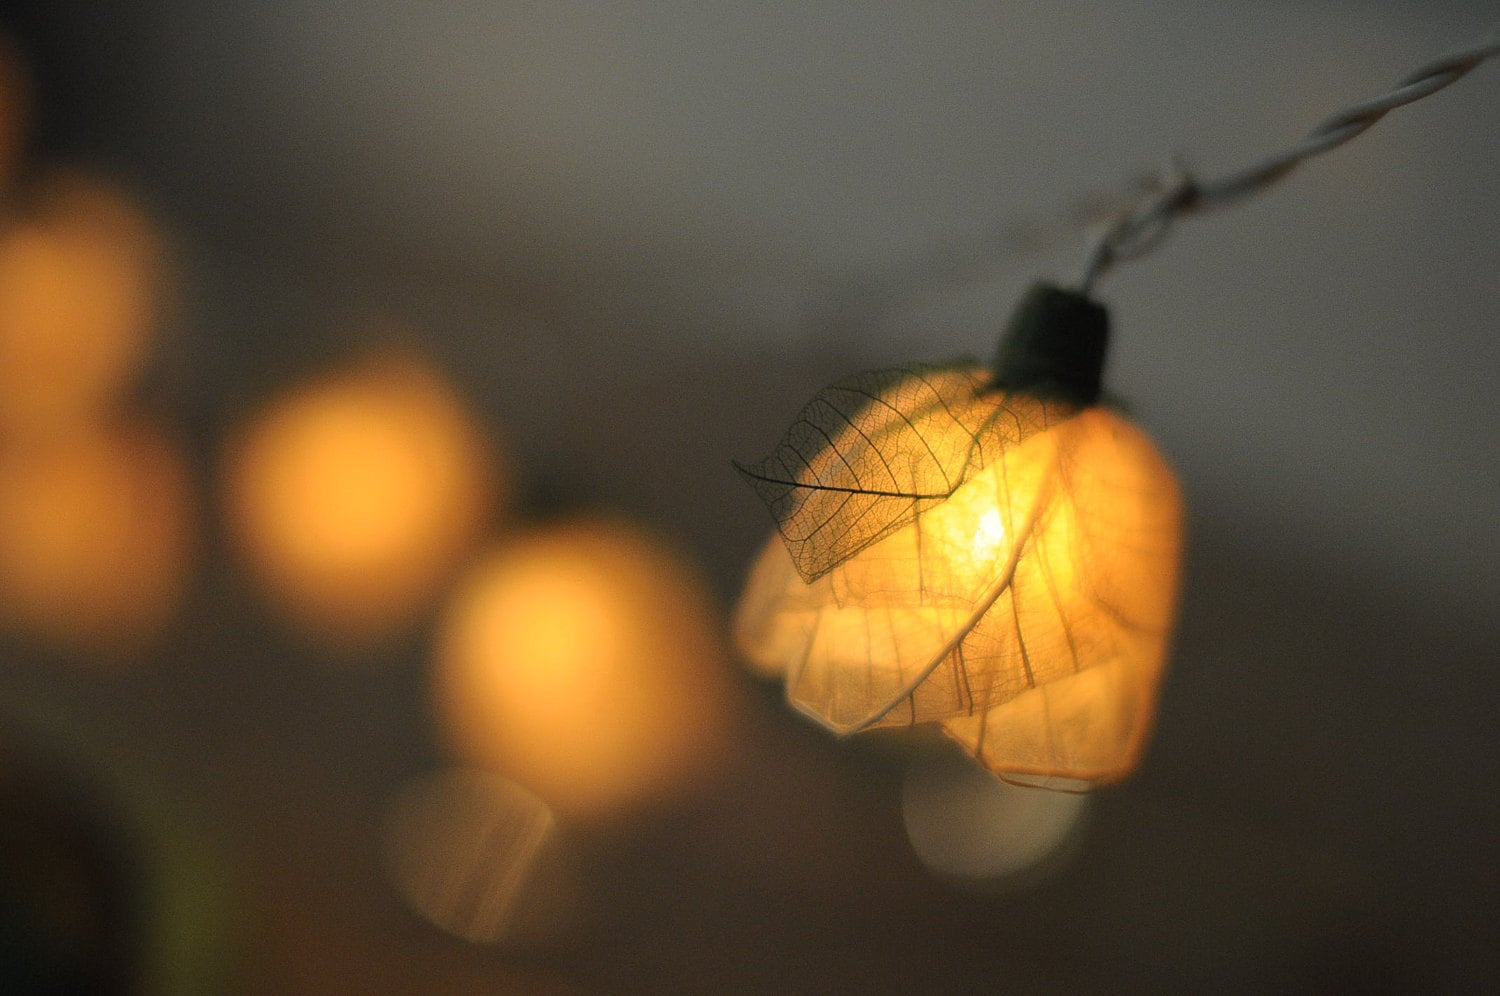 String Lights Garage : Romantic valentine Rose flower leaf string light patio rose living room strand eBay